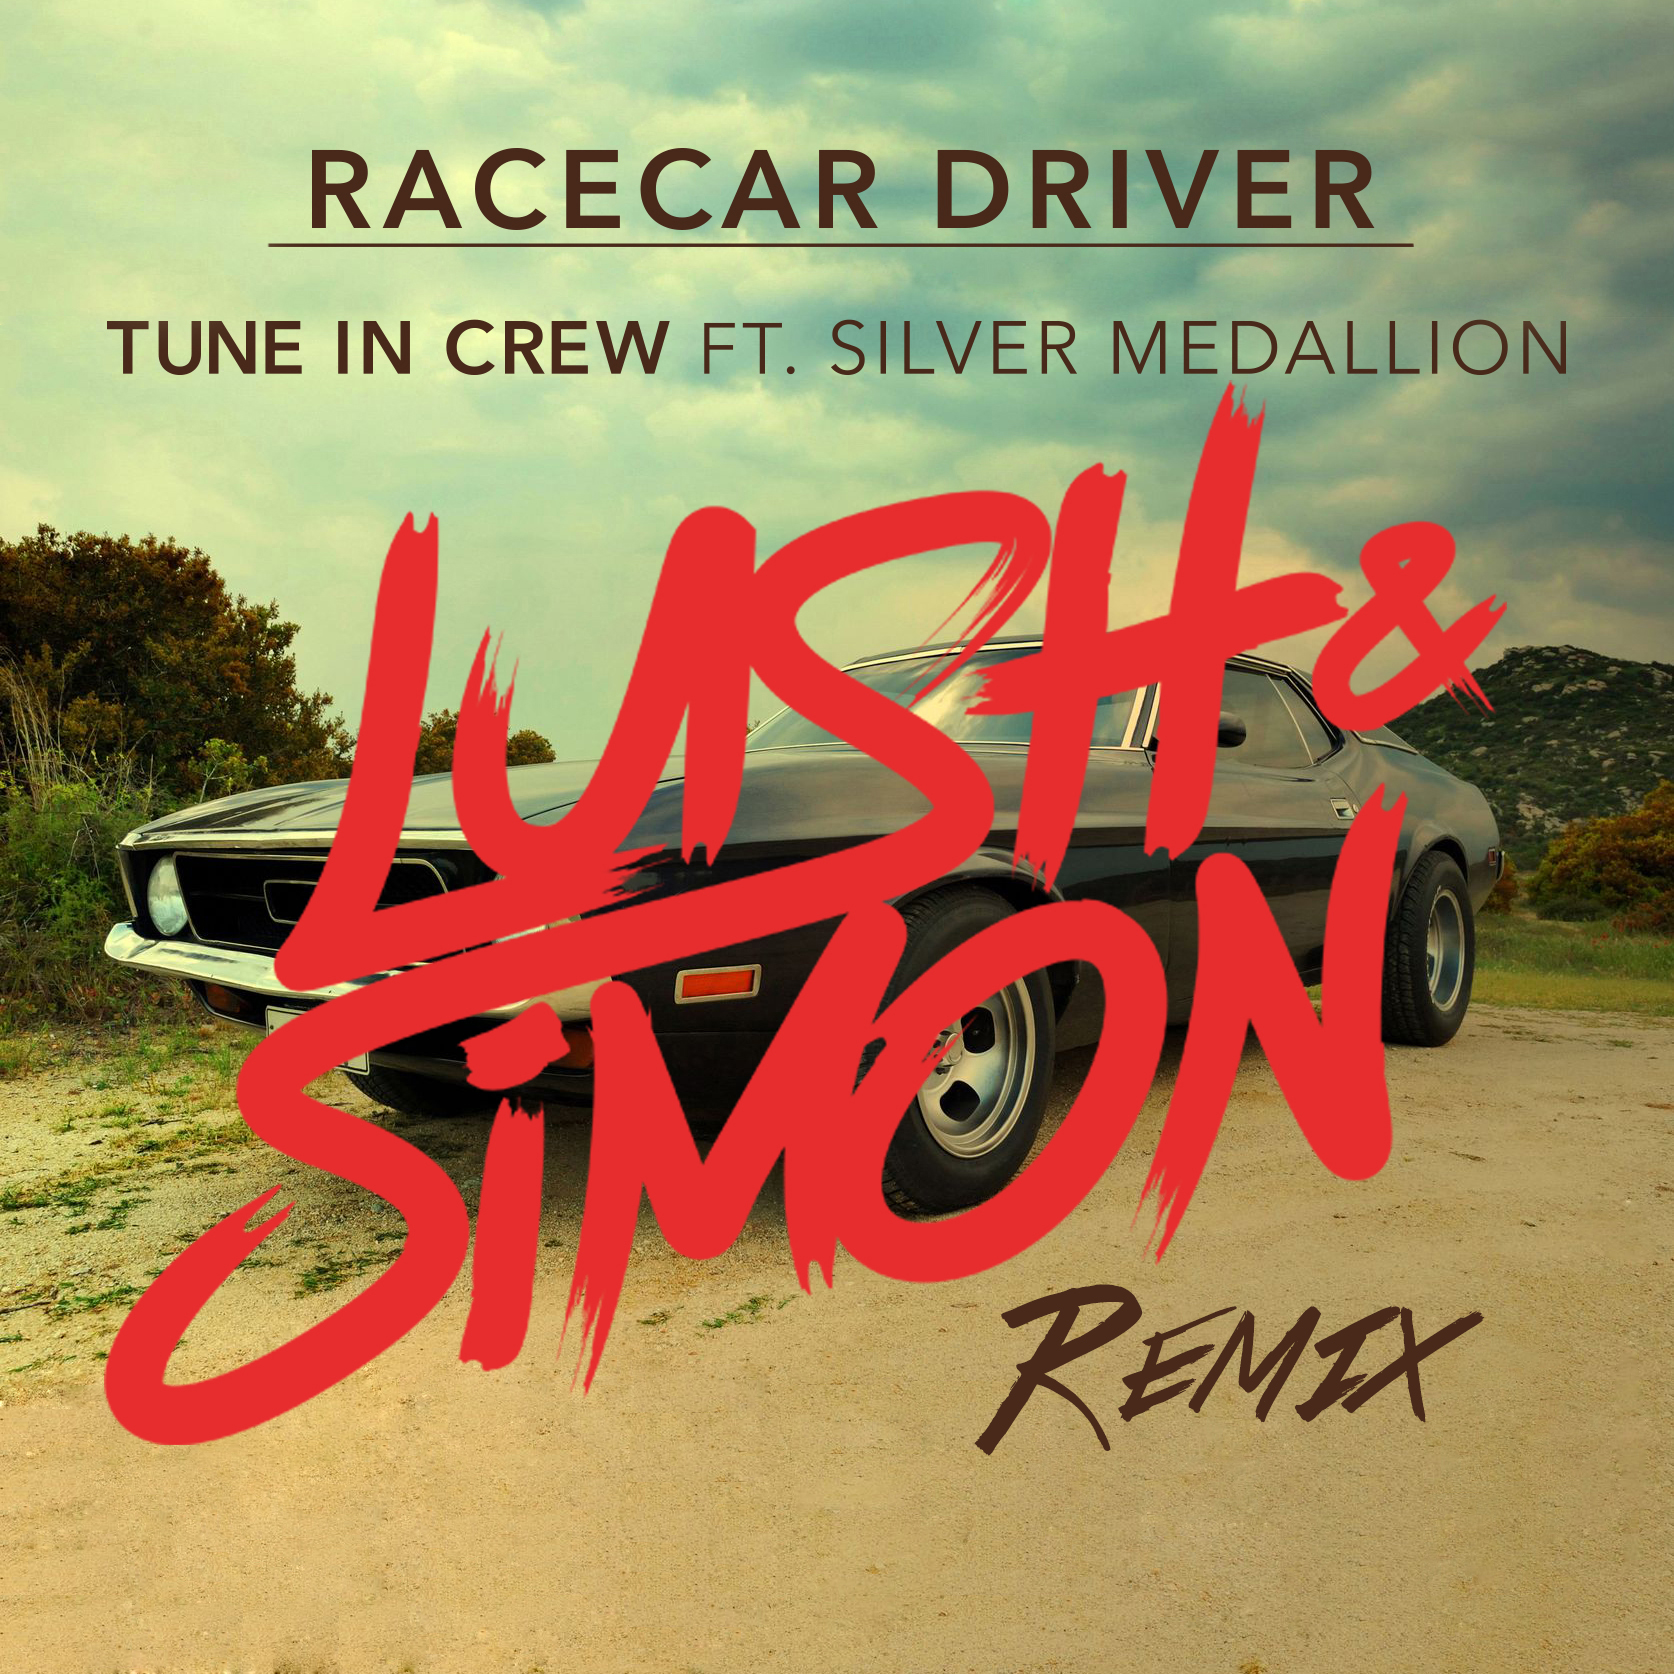 "Tune In Crew ft Silver Medallion ""Racecar Driver"" (Lush & Simon Remix) Out 6/17"